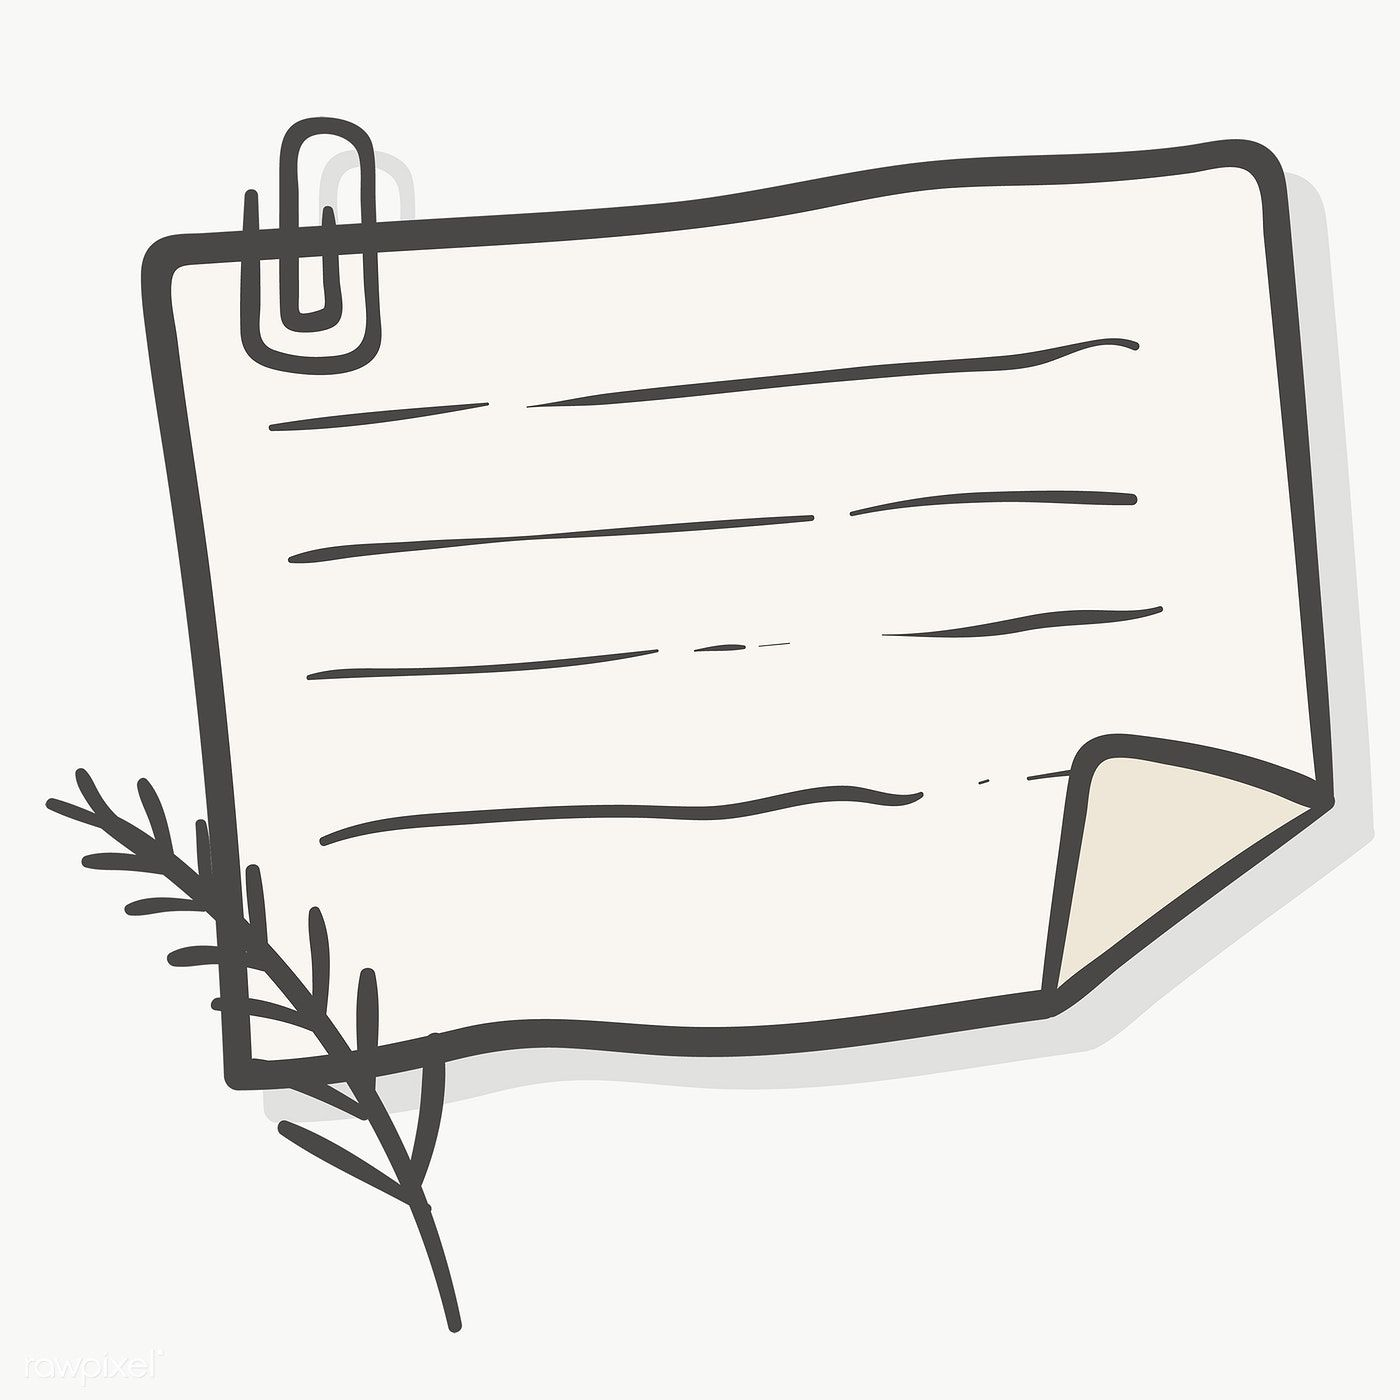 Blank Lined Paper Note With Paper Clip Transparent Png Free Image By Rawpixel Com Chayanit Note Paper Paper Illustration Paper Clip